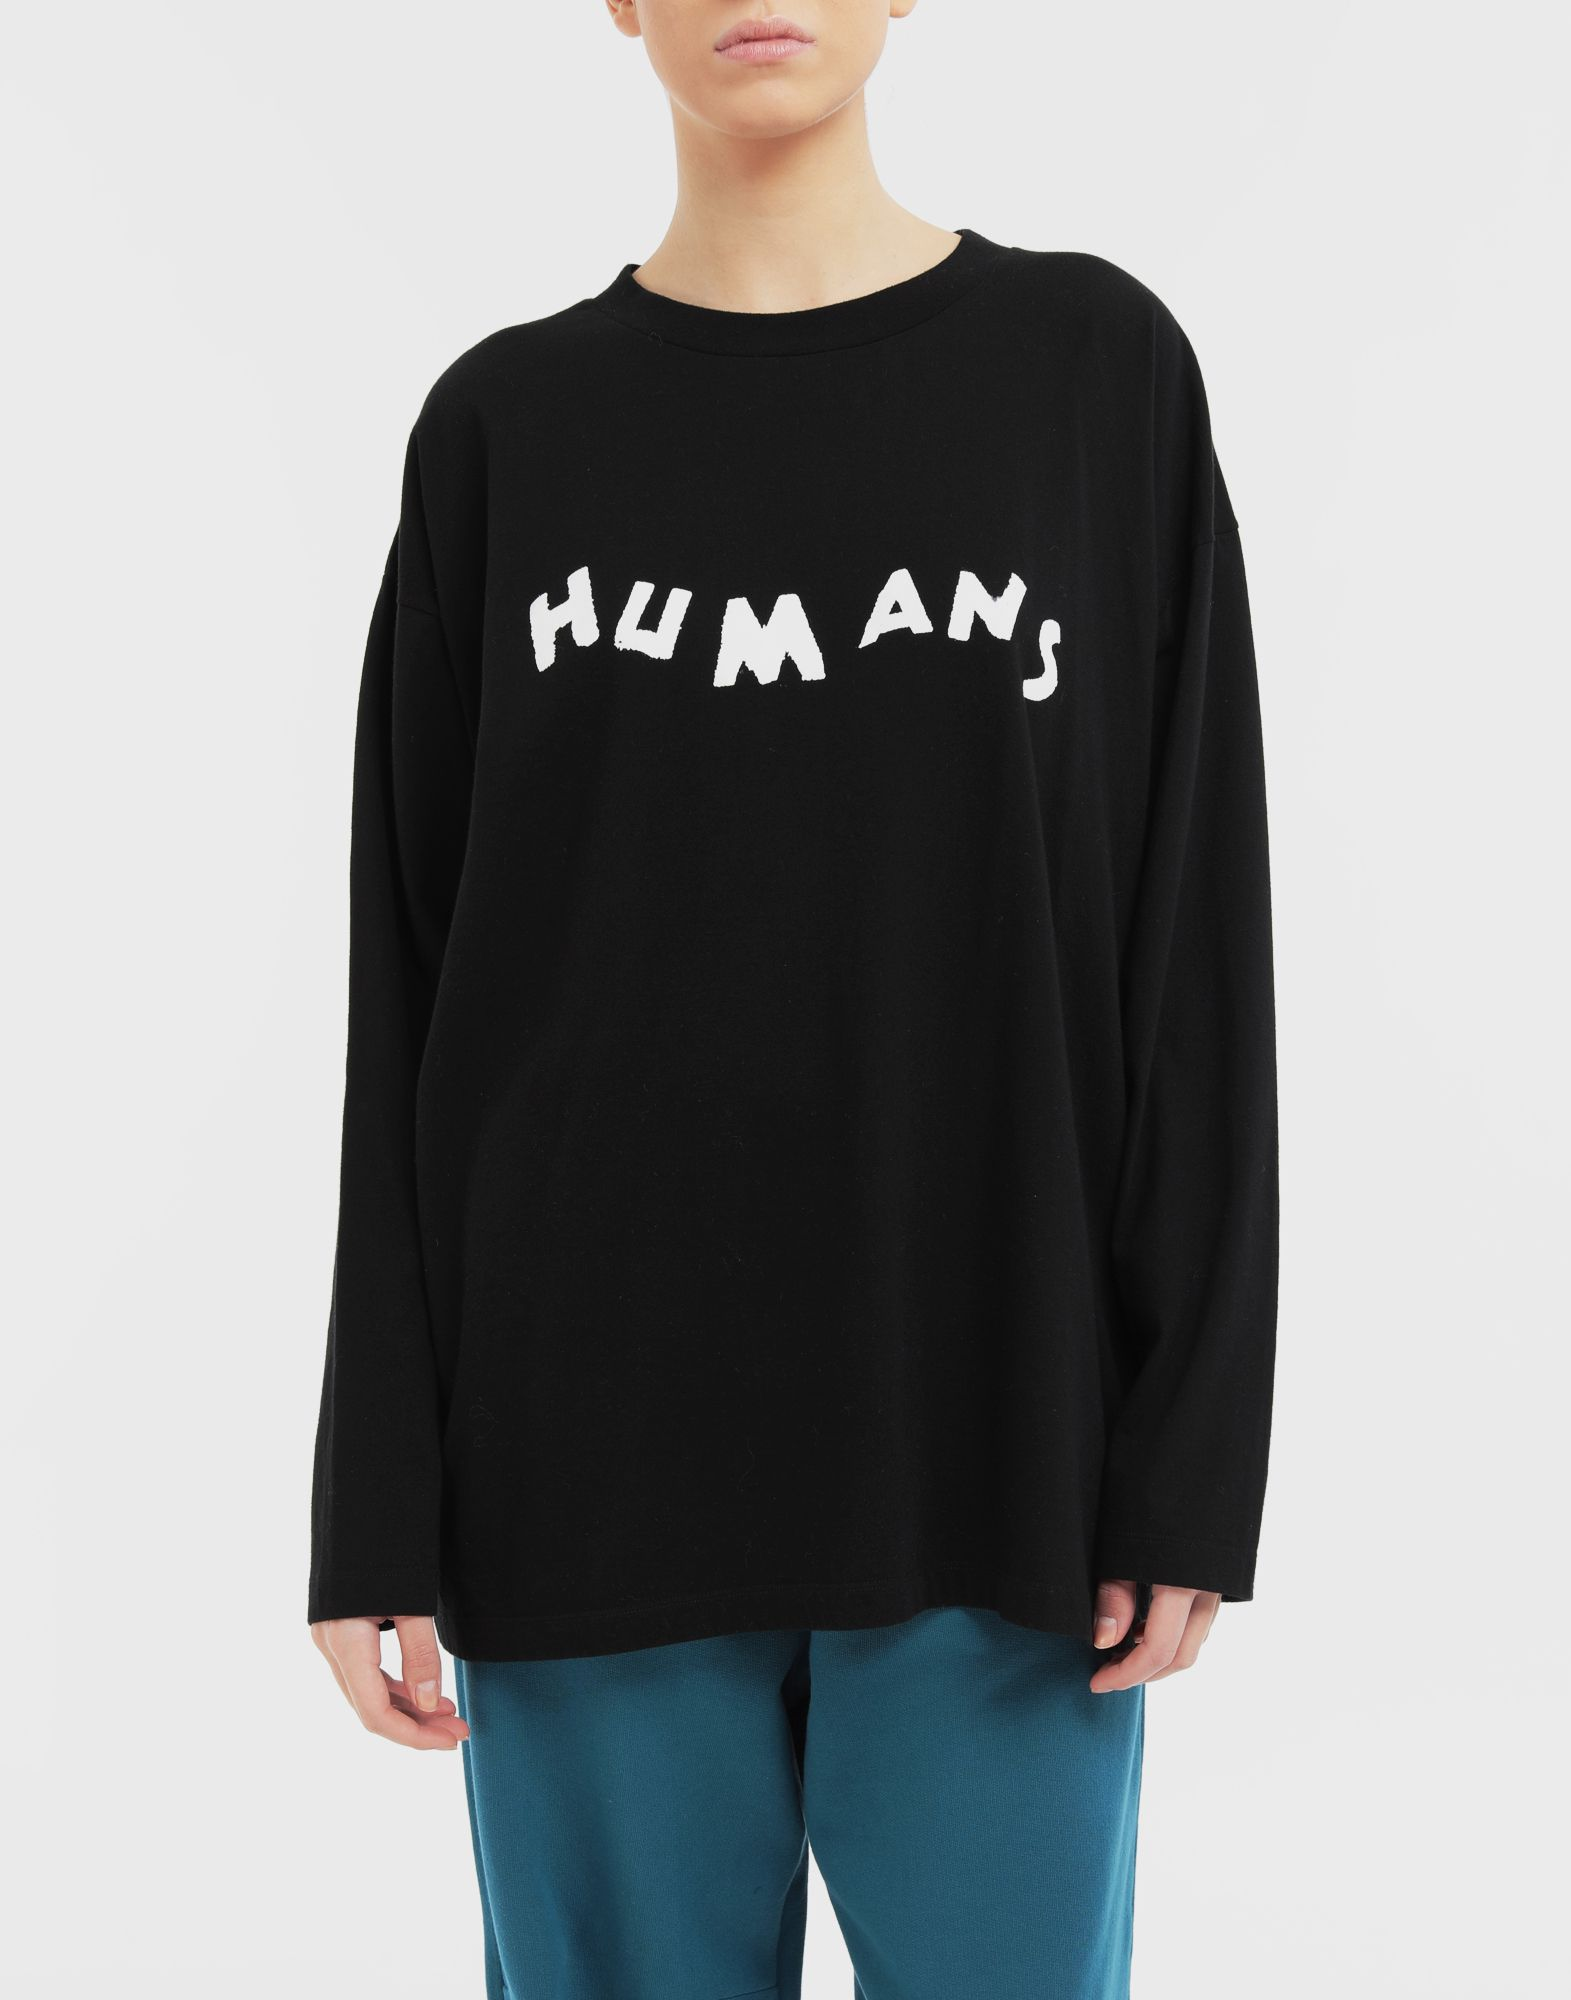 MM6 MAISON MARGIELA 'Humans' sweatshirt Long sleeve t-shirt Woman r